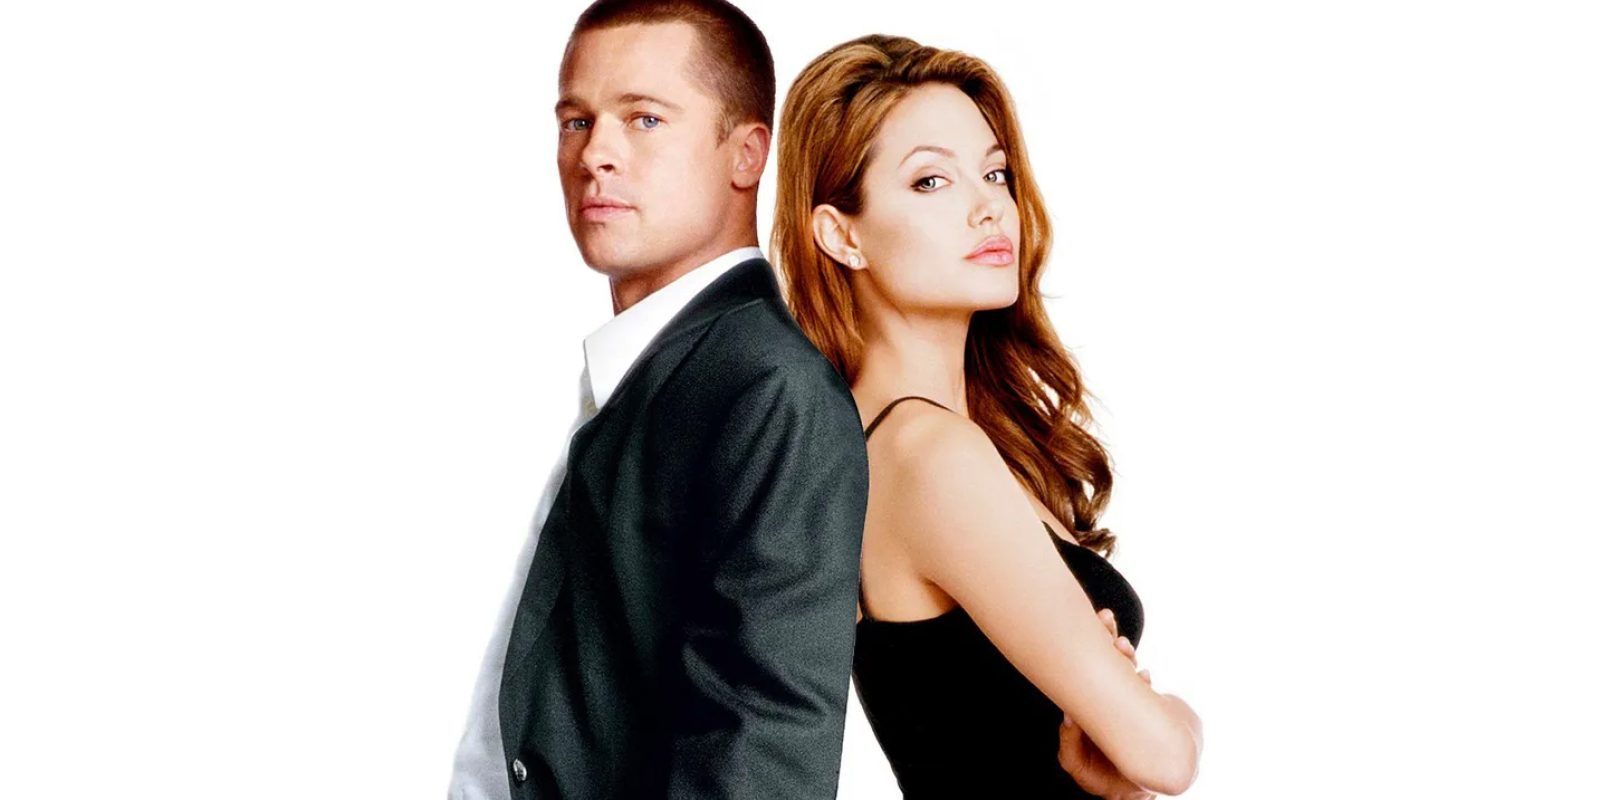 New 5 Weekend Movie Sale At Itunes Highlighted By Action Favorites More Mr And Mrs Smith Guess The Movie Streaming Movies